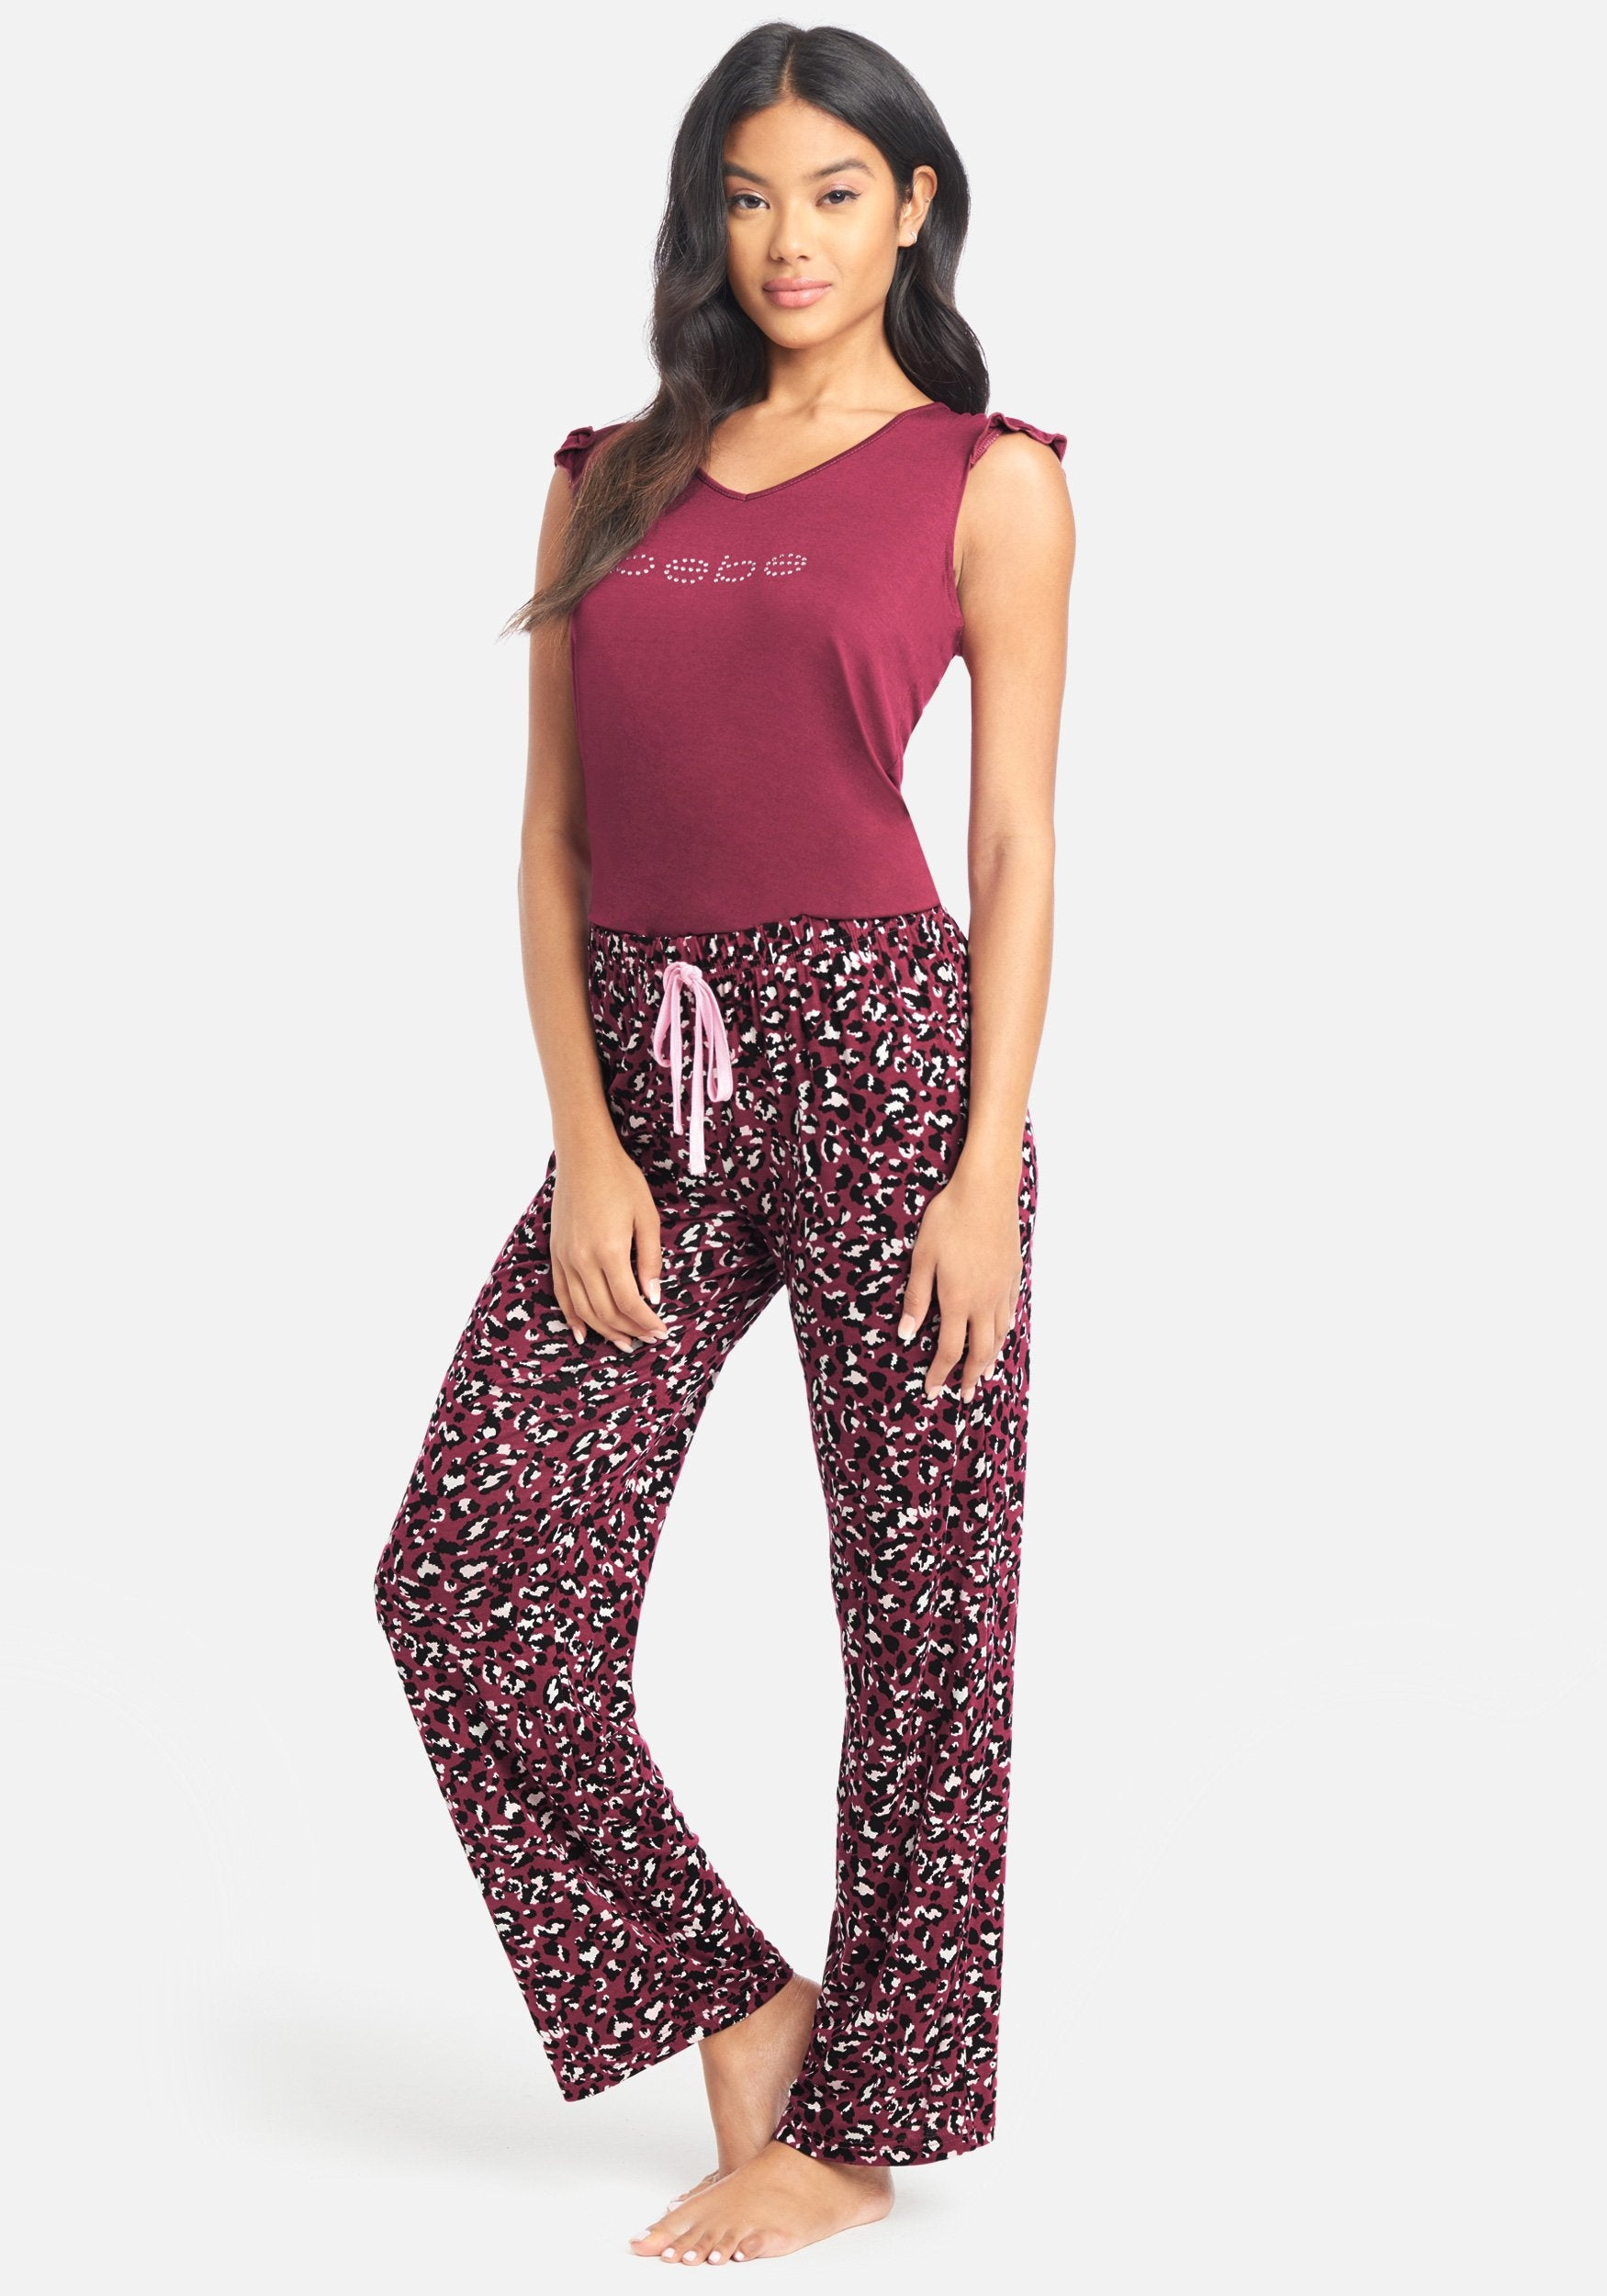 Women's Bebe Printed Pant Set, Size Small in Plum Spandex